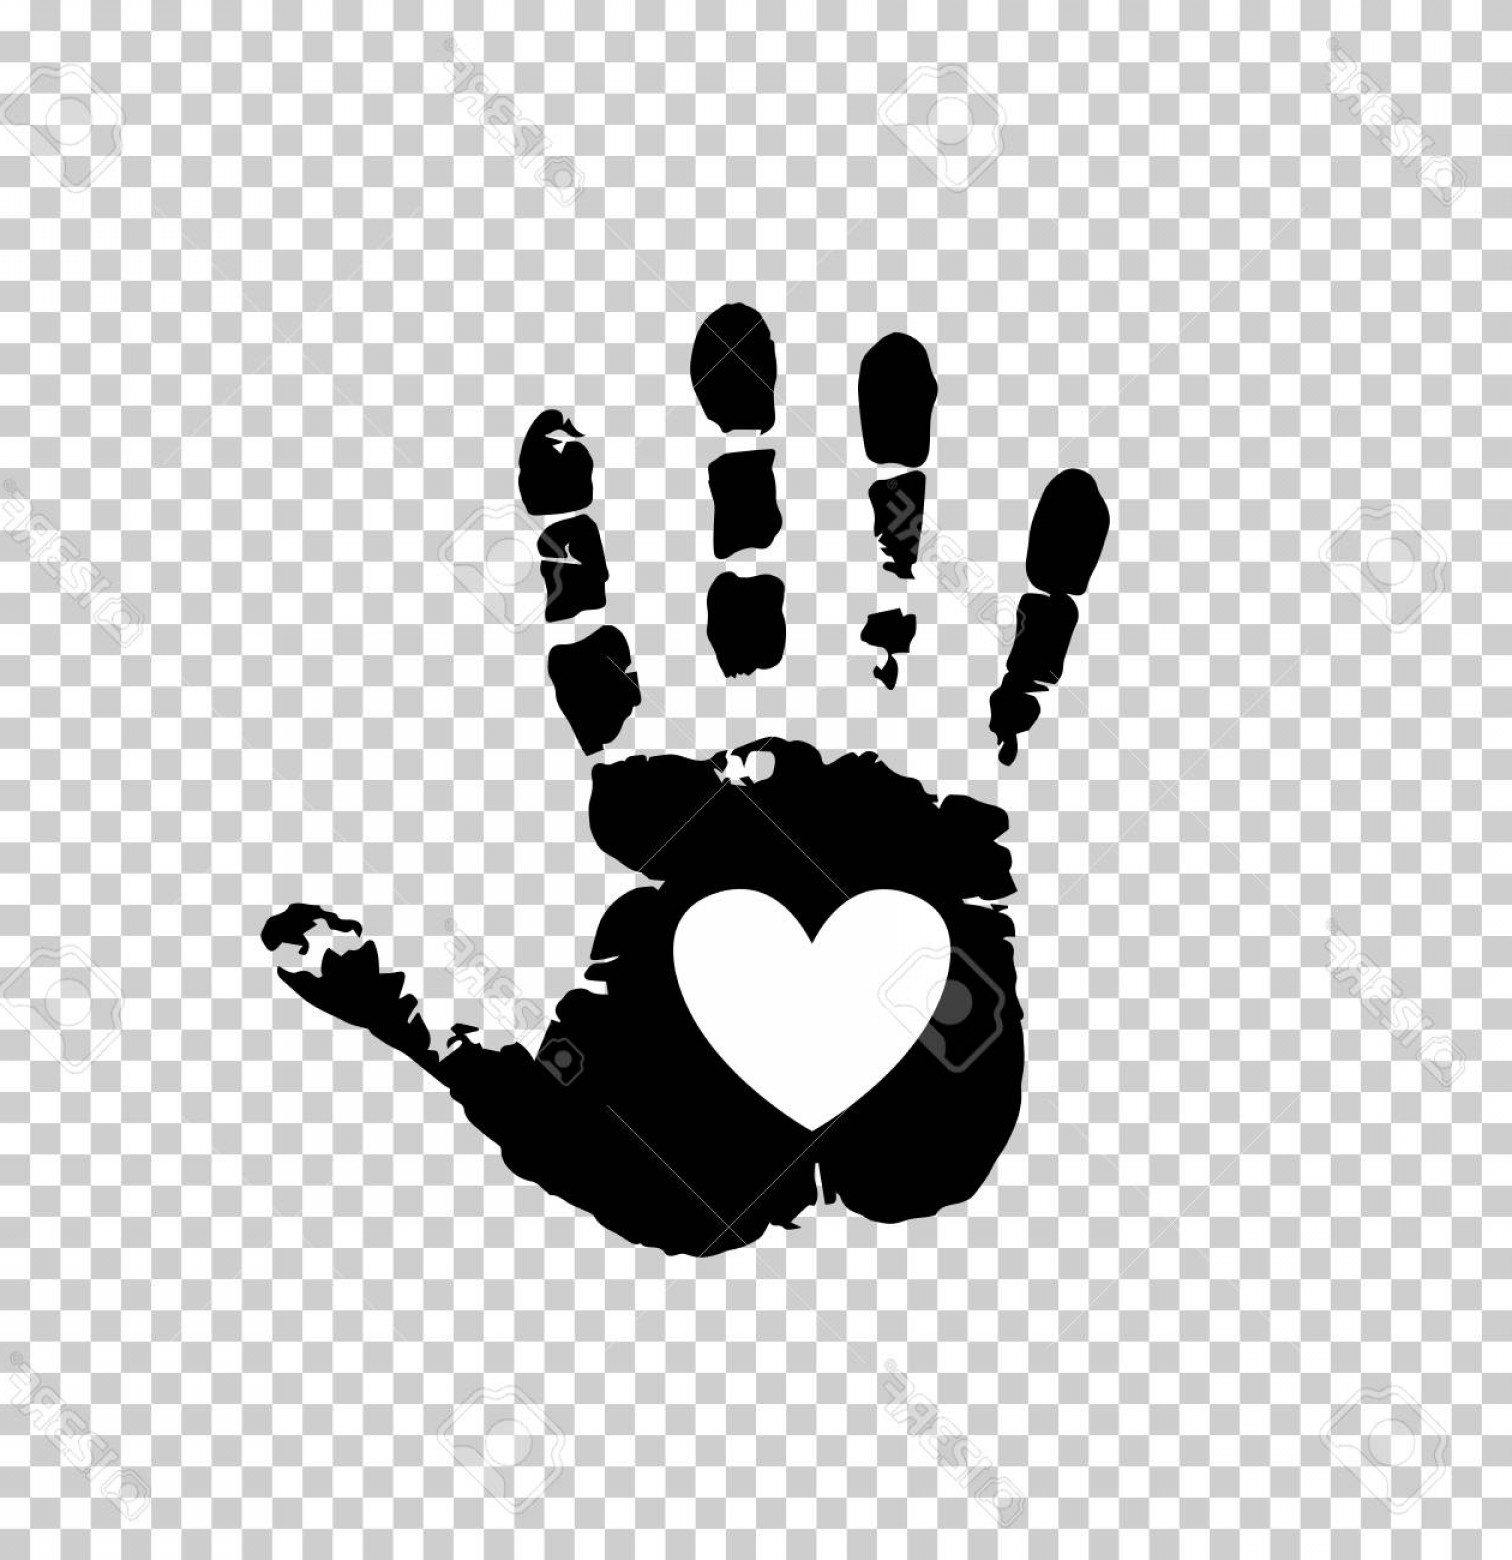 Hand Prints Vector Transparent Background: Photostock Vector Black Silhouette Of Human Hand Print With Heart Sign In Open Palm Isolated On Transparent Background